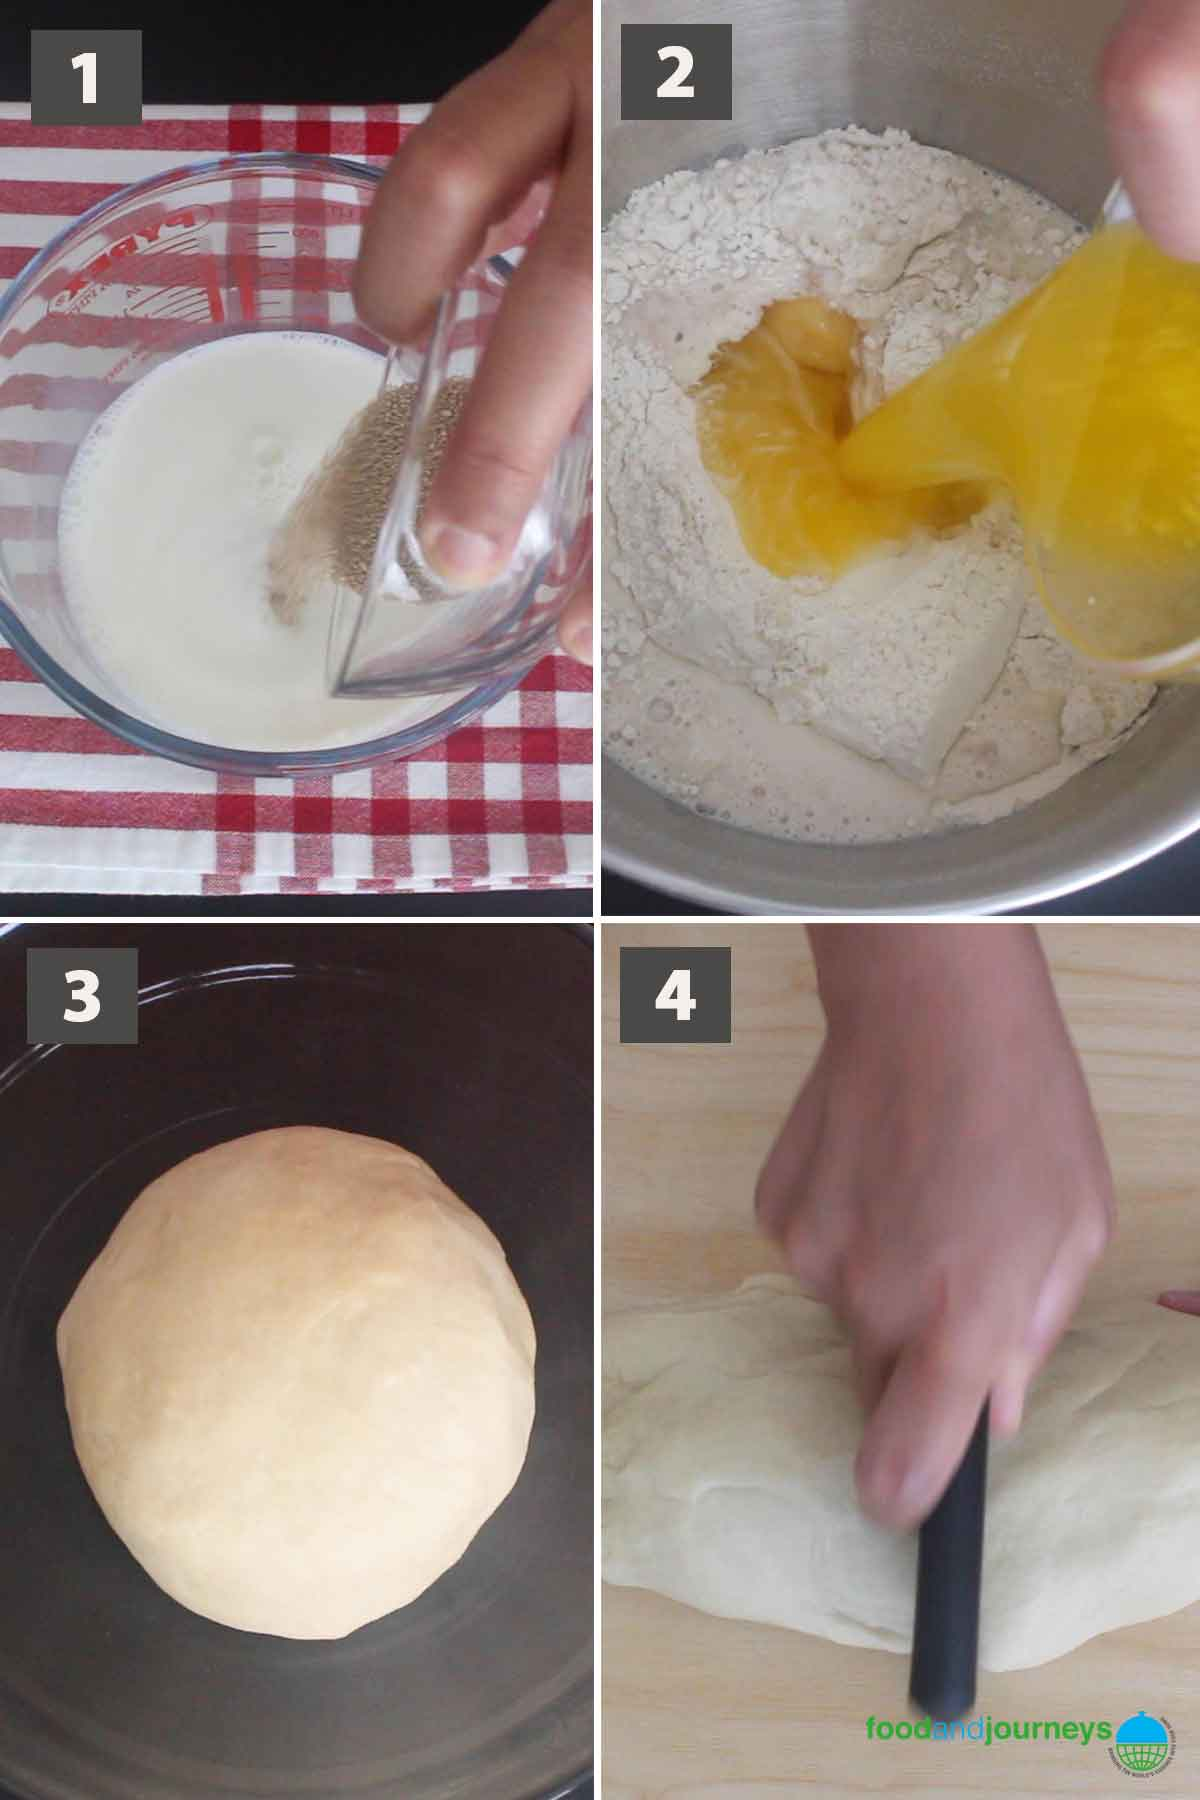 May2021 Updated first part of a collage of images showing the step by step process of making Sicilian brioche.